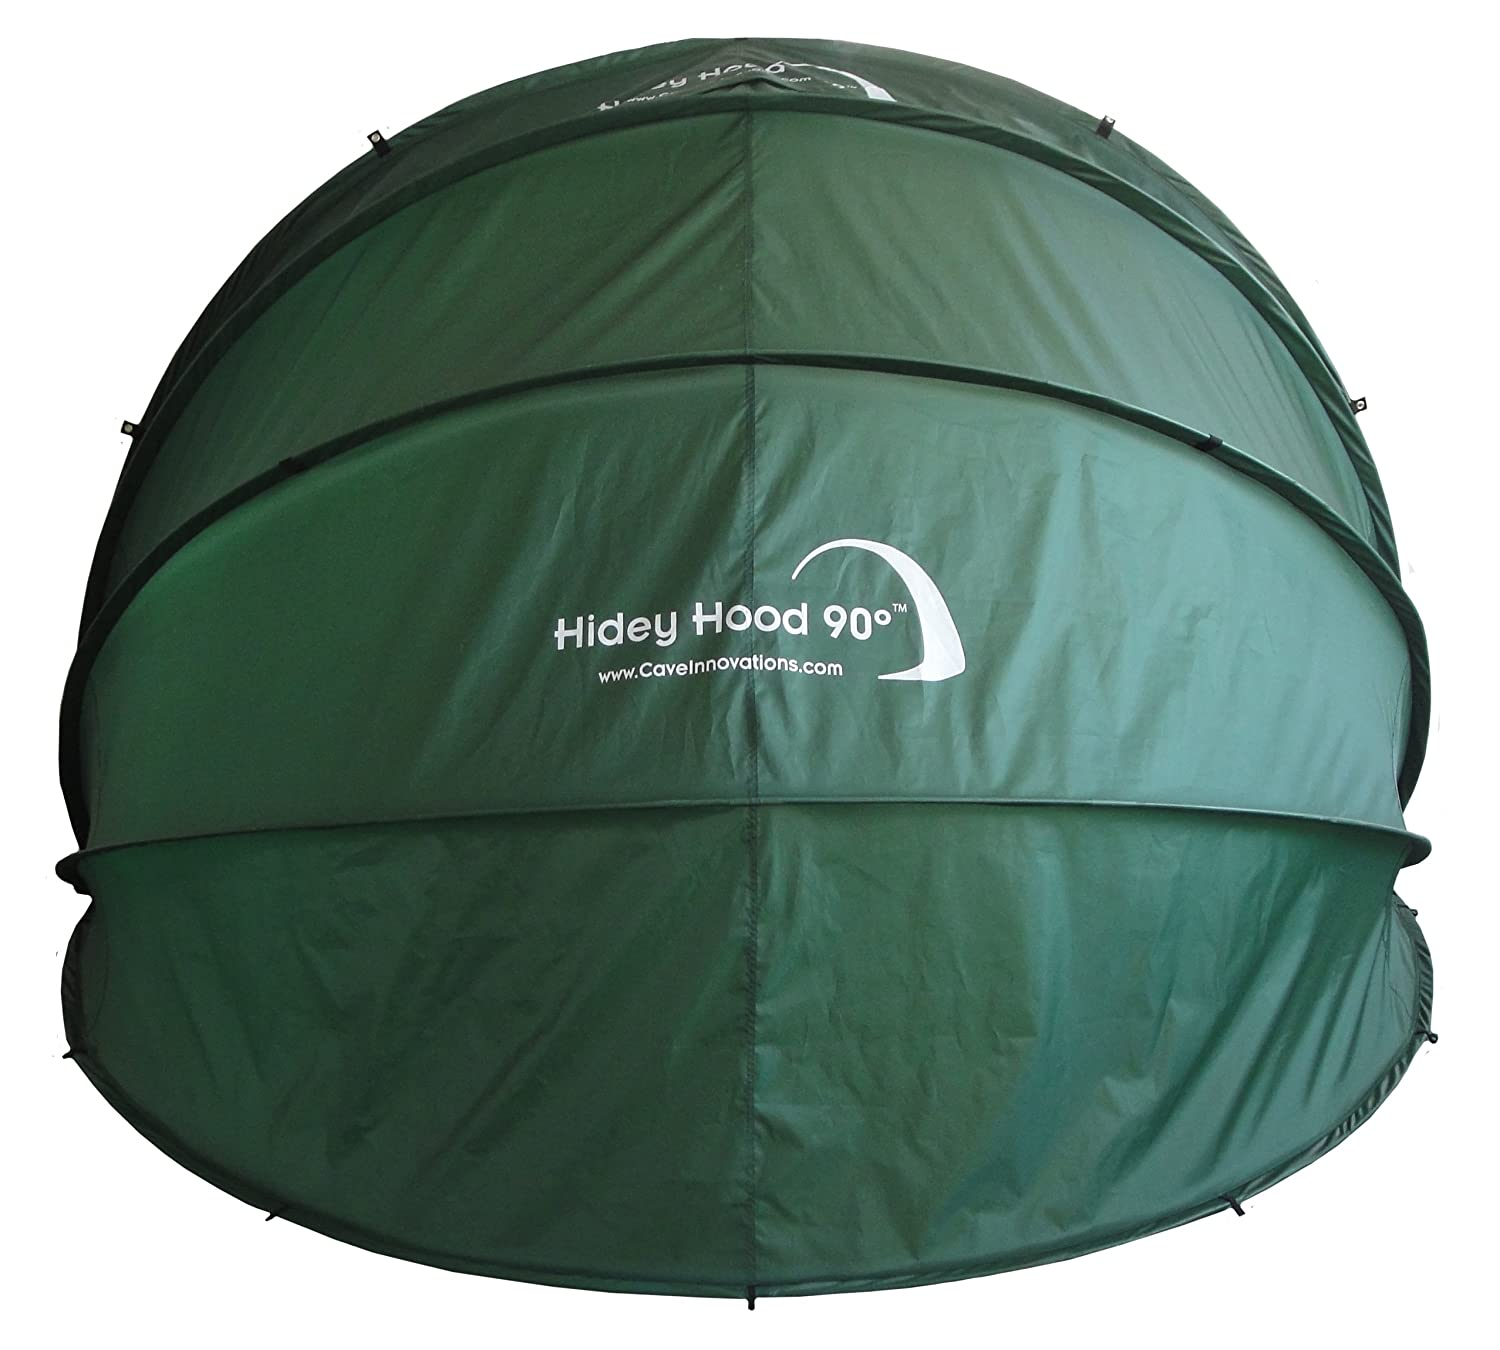 Rob McAlister Hidey Hood HIH90 Motorbike Protection Cover 90-Degree Wall-Mounted Rob McAlister Ltd